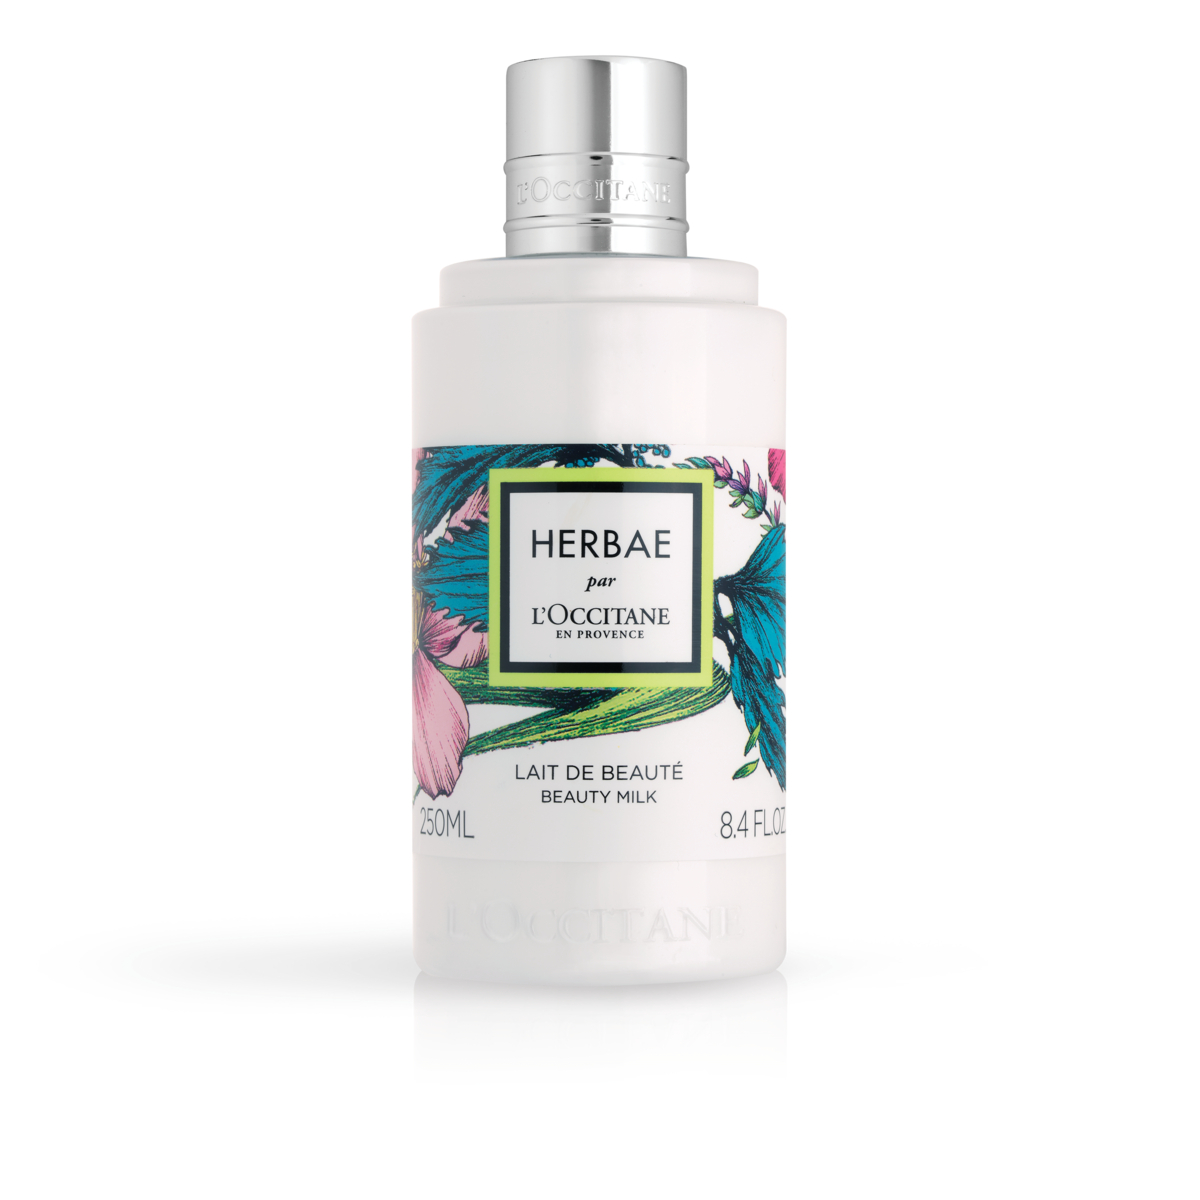 LOccitane HERBAE Latte di bellezza 250ml